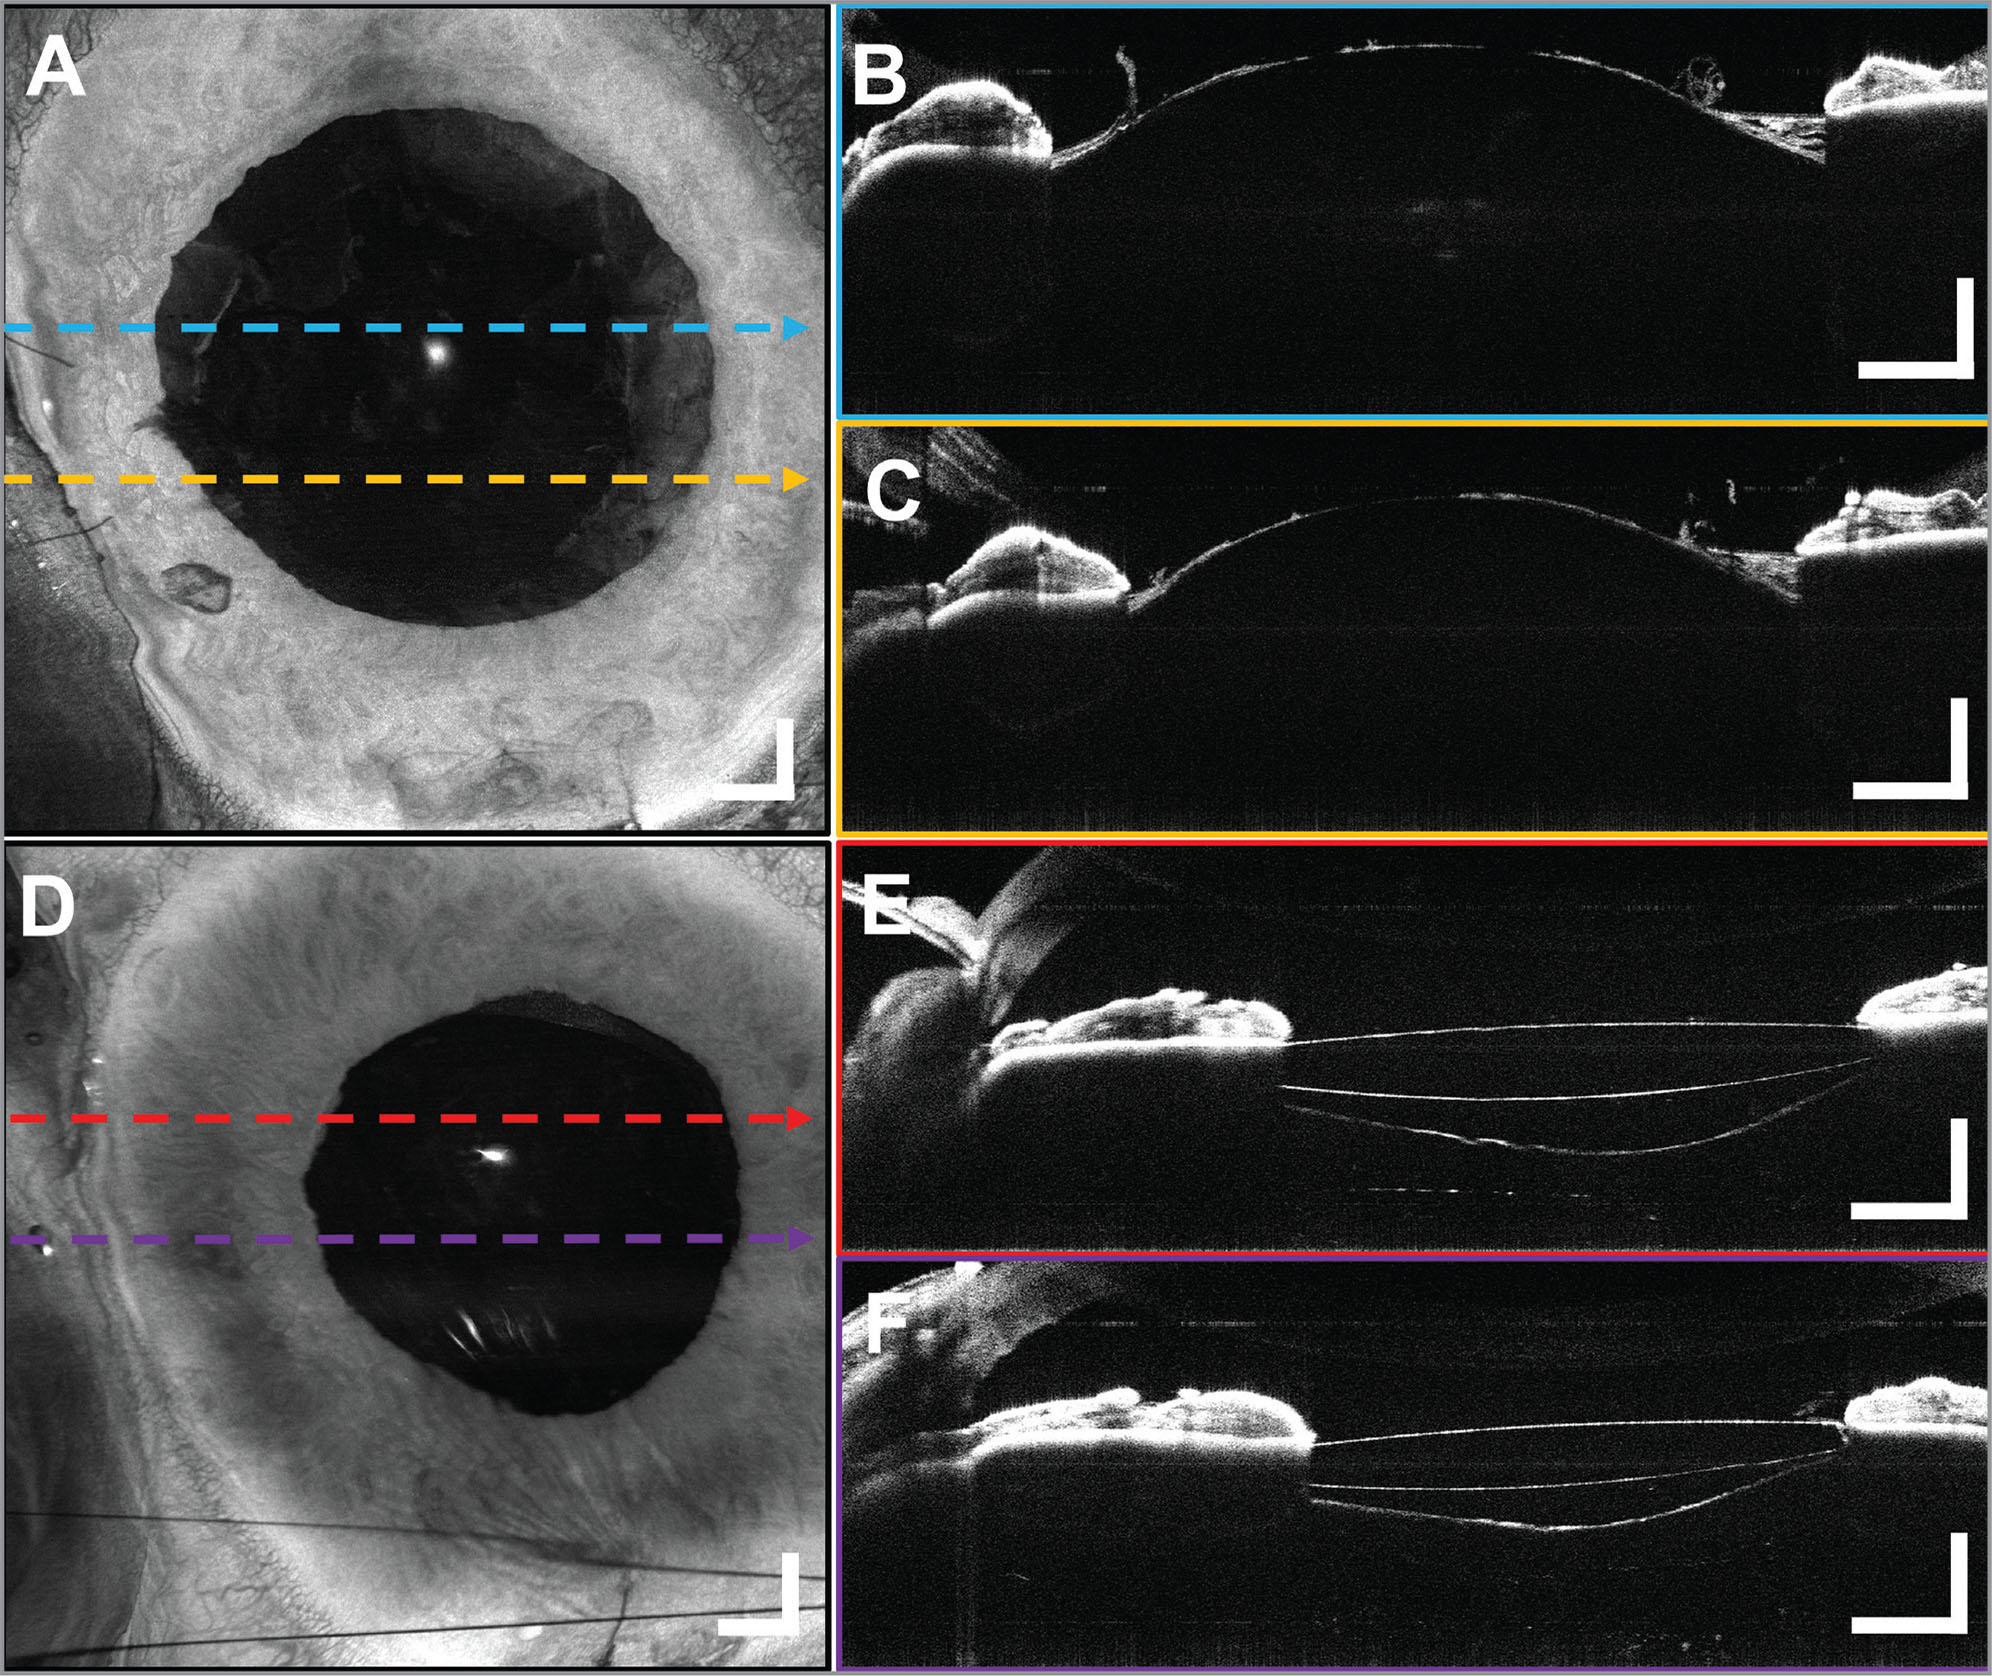 A 10 × 10 mm2 widefield optical coherence tomography (OCT) volumetric images from a 70-year-old male subject undergoing cataract removal. Post-phacoemulsification (A) en face projection with (B, C) representative B-scans. Edges of the anterior capsule are noted (arrows). The remains of the peeled anterior lens capsule and the intact posterior surface of the lens can be seen bulging forward because of the positive vitreous pressure. The OCT confirms the absence of a posterior capsular rent. Postoperative (D) widefield en face projection of the implanted intraocular lens (IOL) with (E, F) representative B-scans confirming the placement of the IOL in the posterior capsule with the ends of the optics behind the iris. The edges of the capsulorrhexis are visible anterior to the IOL (arrows), and the intact posterior capsular bag is filled with viscoelastic posterior to the IOL. Displayed B-scans are averages of five adjacent B-scans. Scale bars are 1 mm.